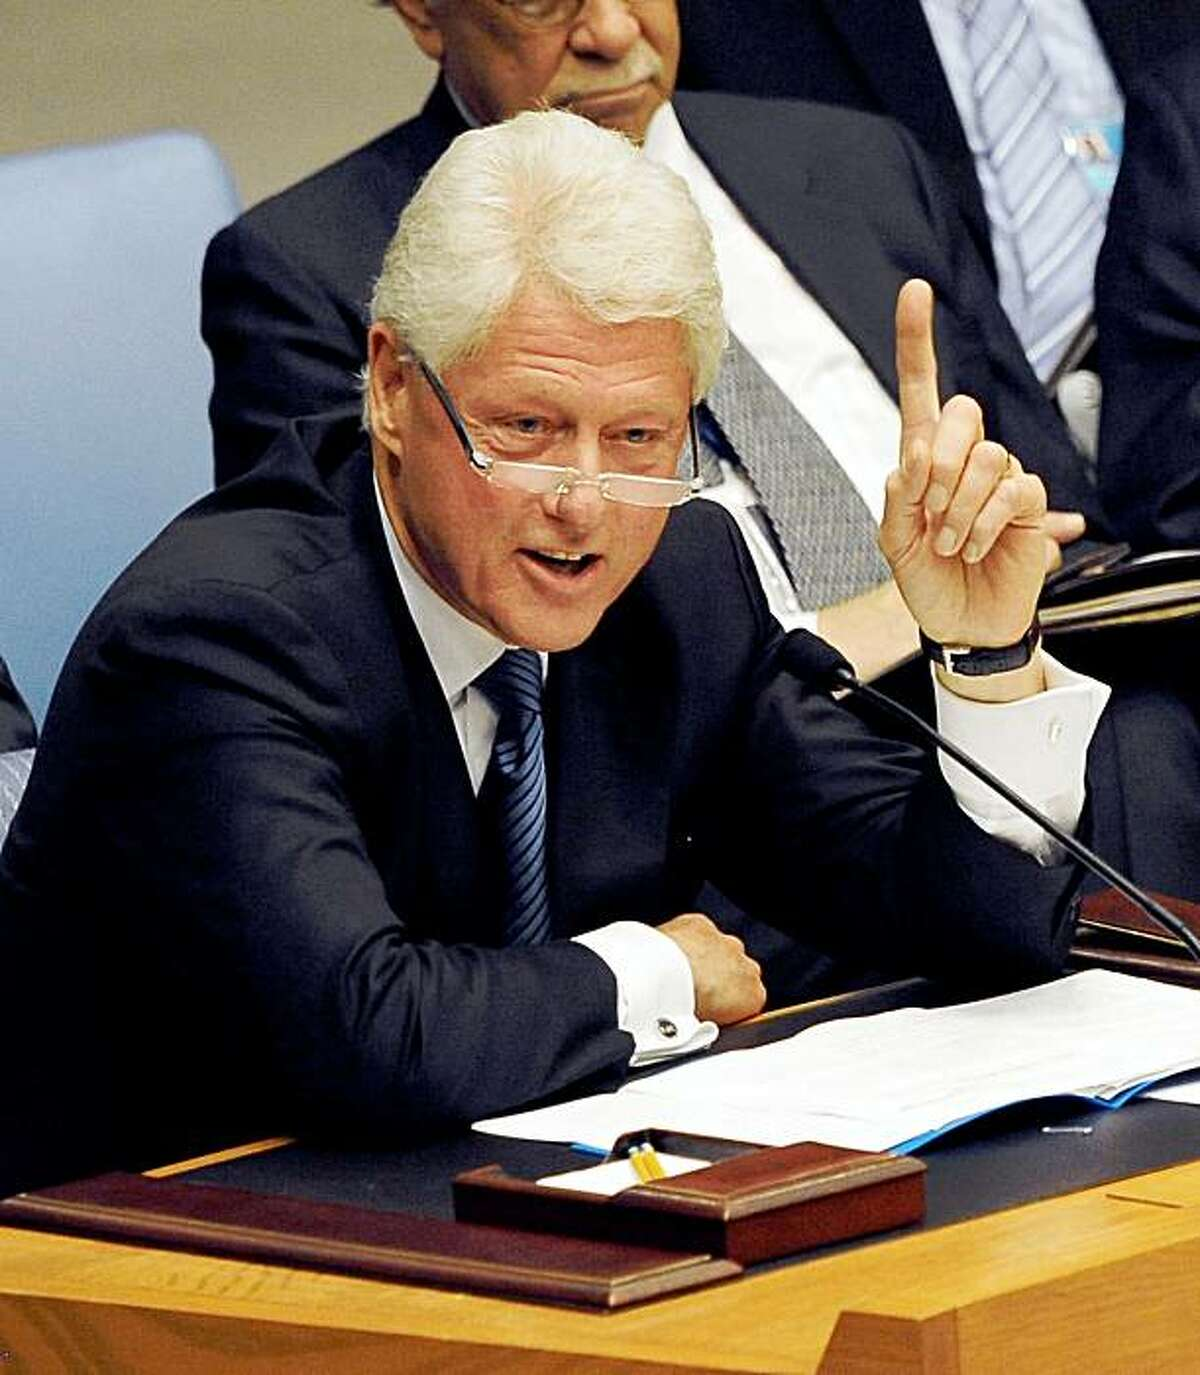 Former US President Bill Clinton, United Nations Special Envoy for Haiti, addresses the Security Council September 9, 2009 as he gives a report on the UN Stabilization Mission in Haiti at UN headquarters in New York. AFP PHOTO/Stan Honda (Photo credit should read STAN HONDA/AFP/Getty Images)